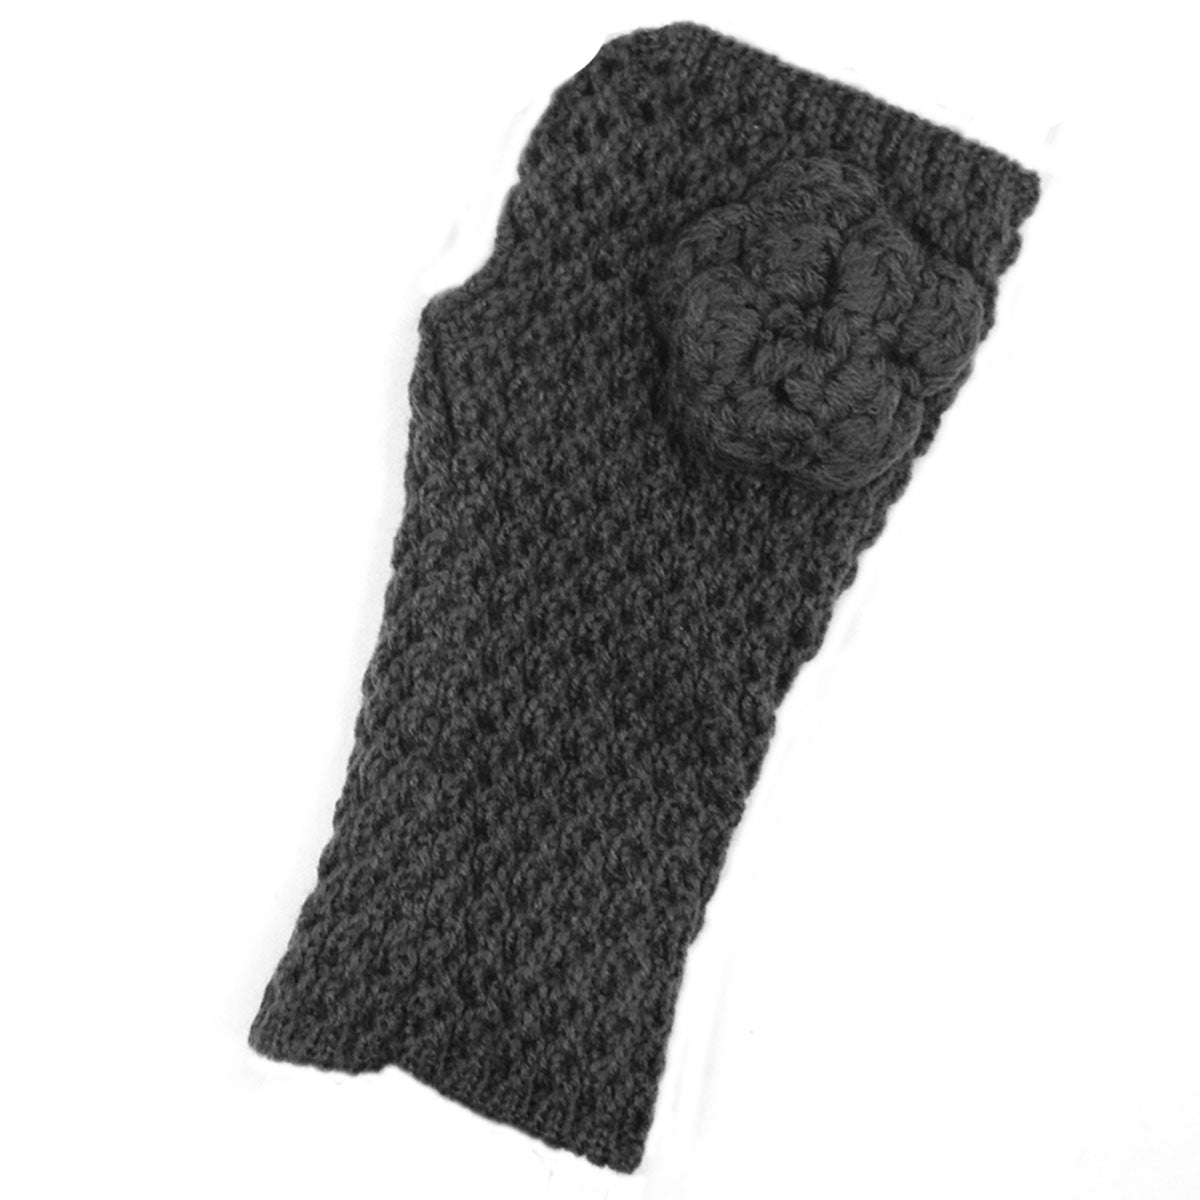 Wrapables Soft Knit Fingerless Gloves with Flower